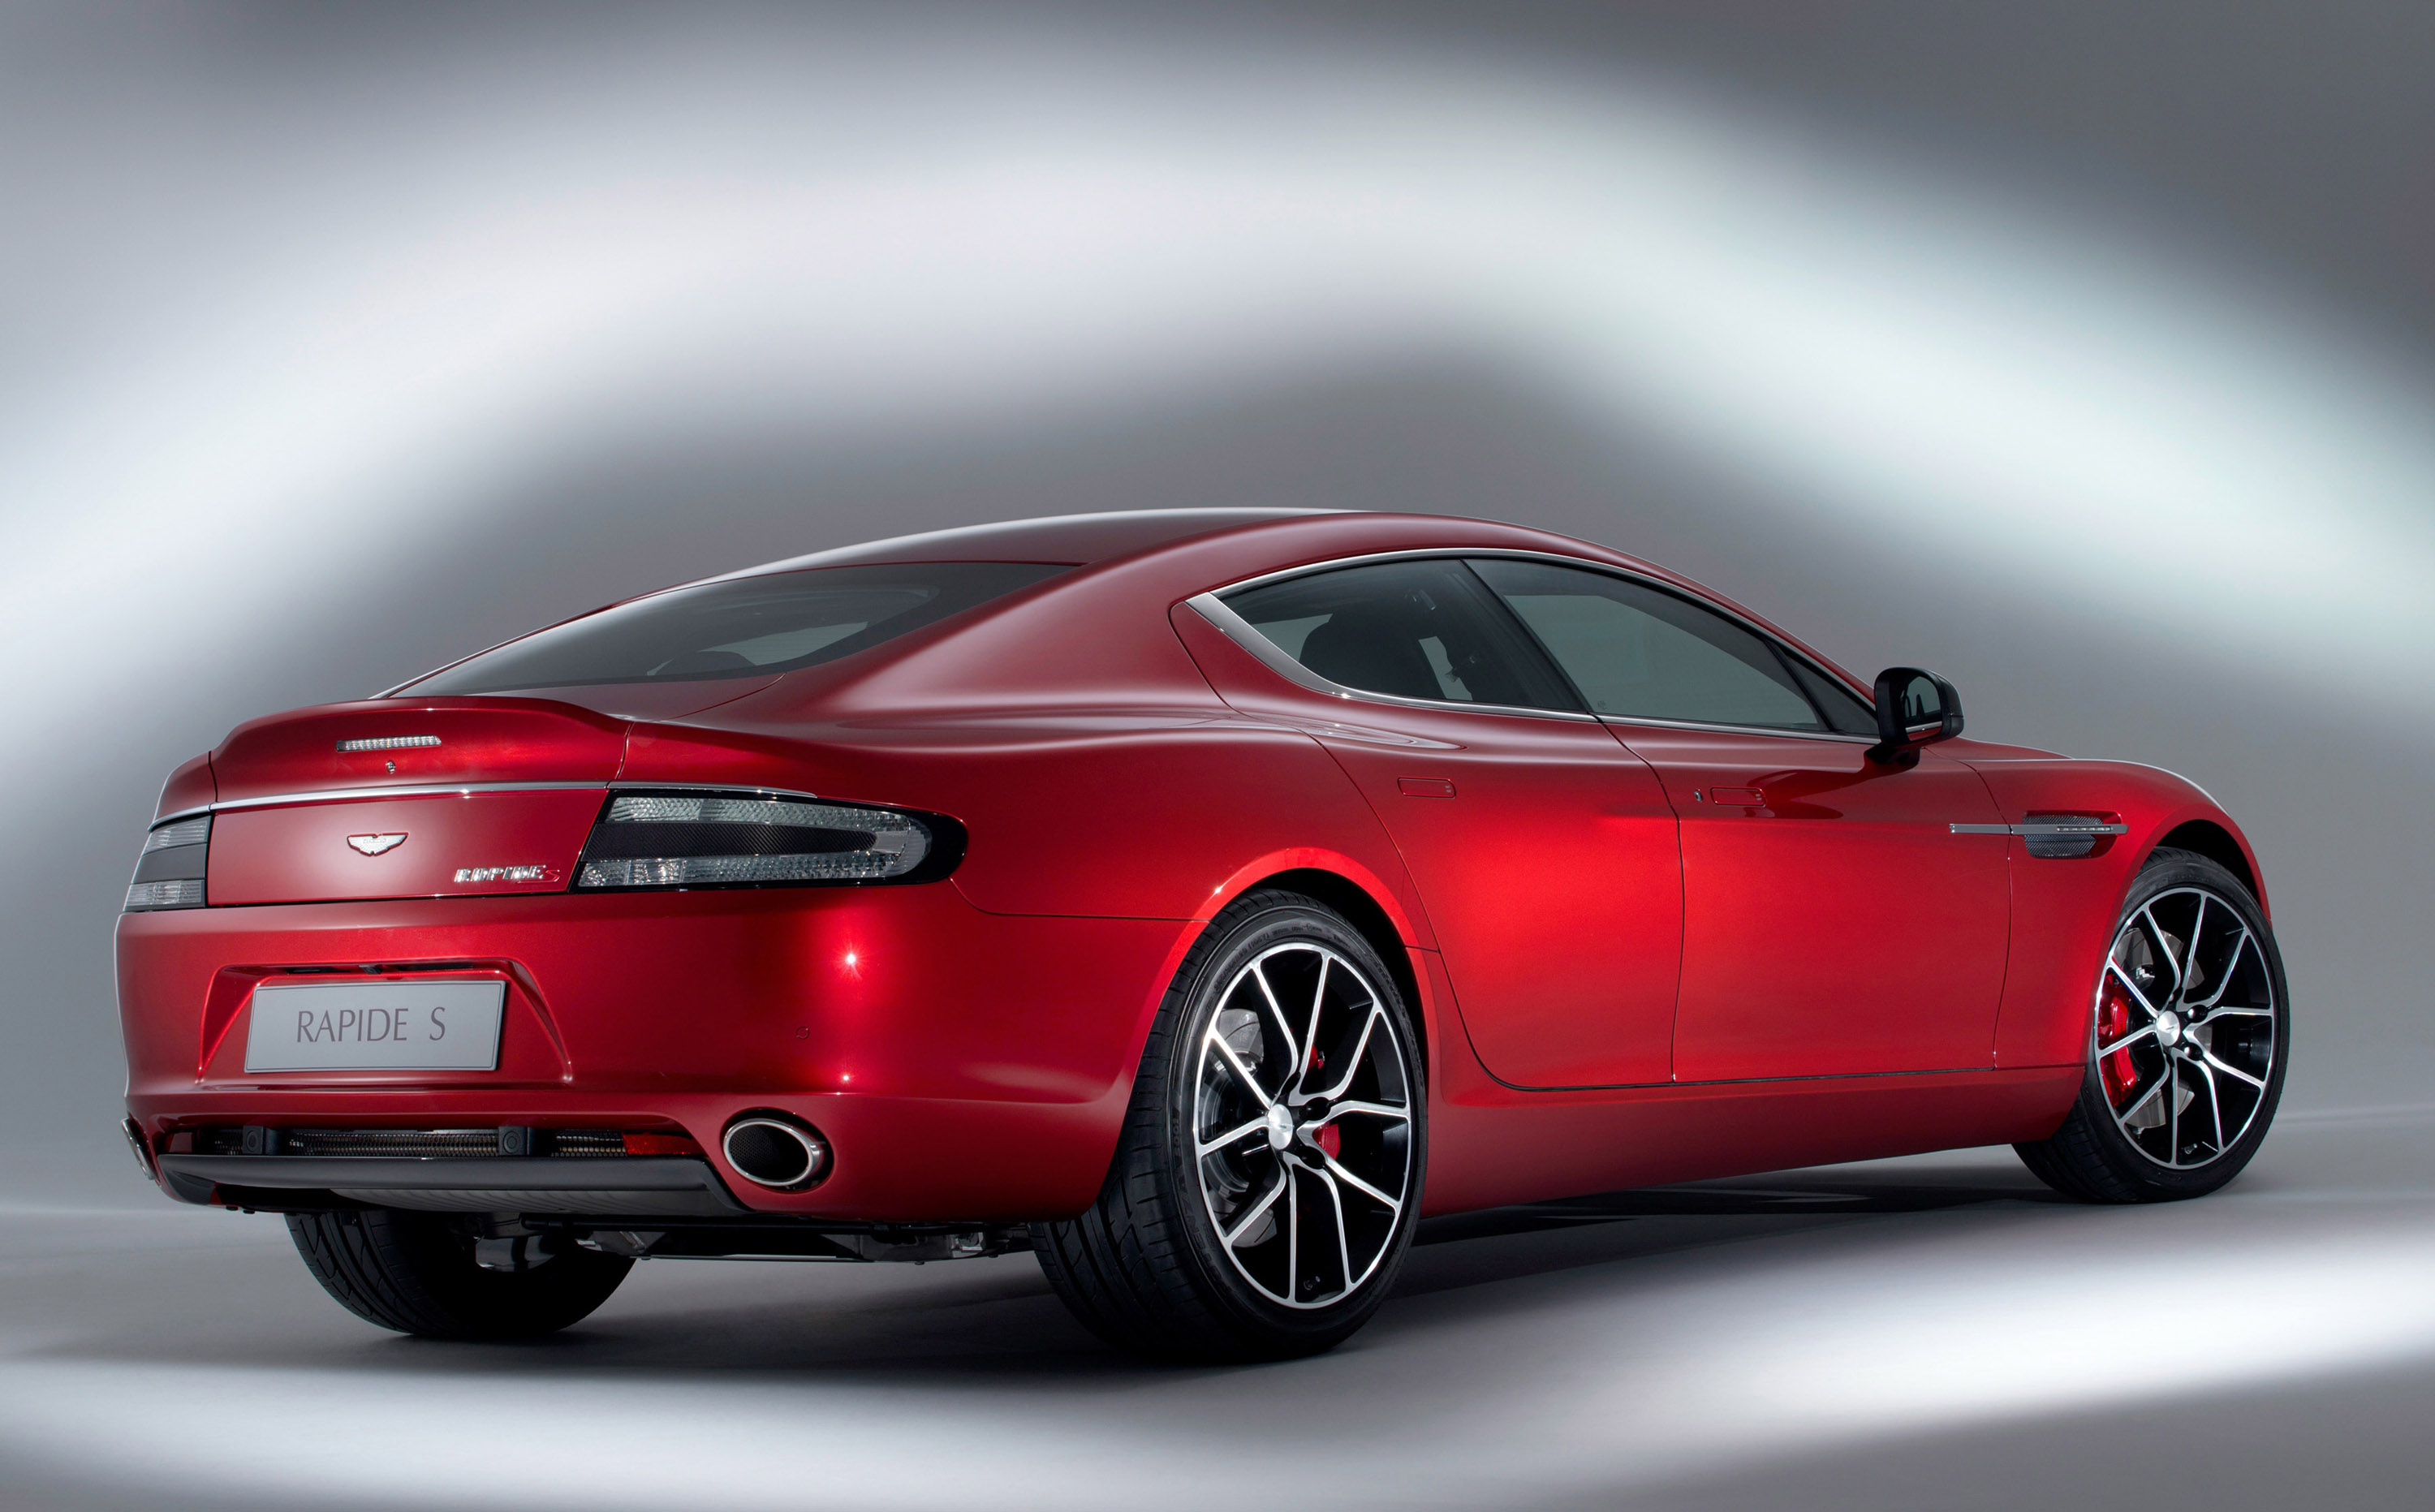 aston martin rapide s hybrid hydrogen to compete at nurburgring. Black Bedroom Furniture Sets. Home Design Ideas